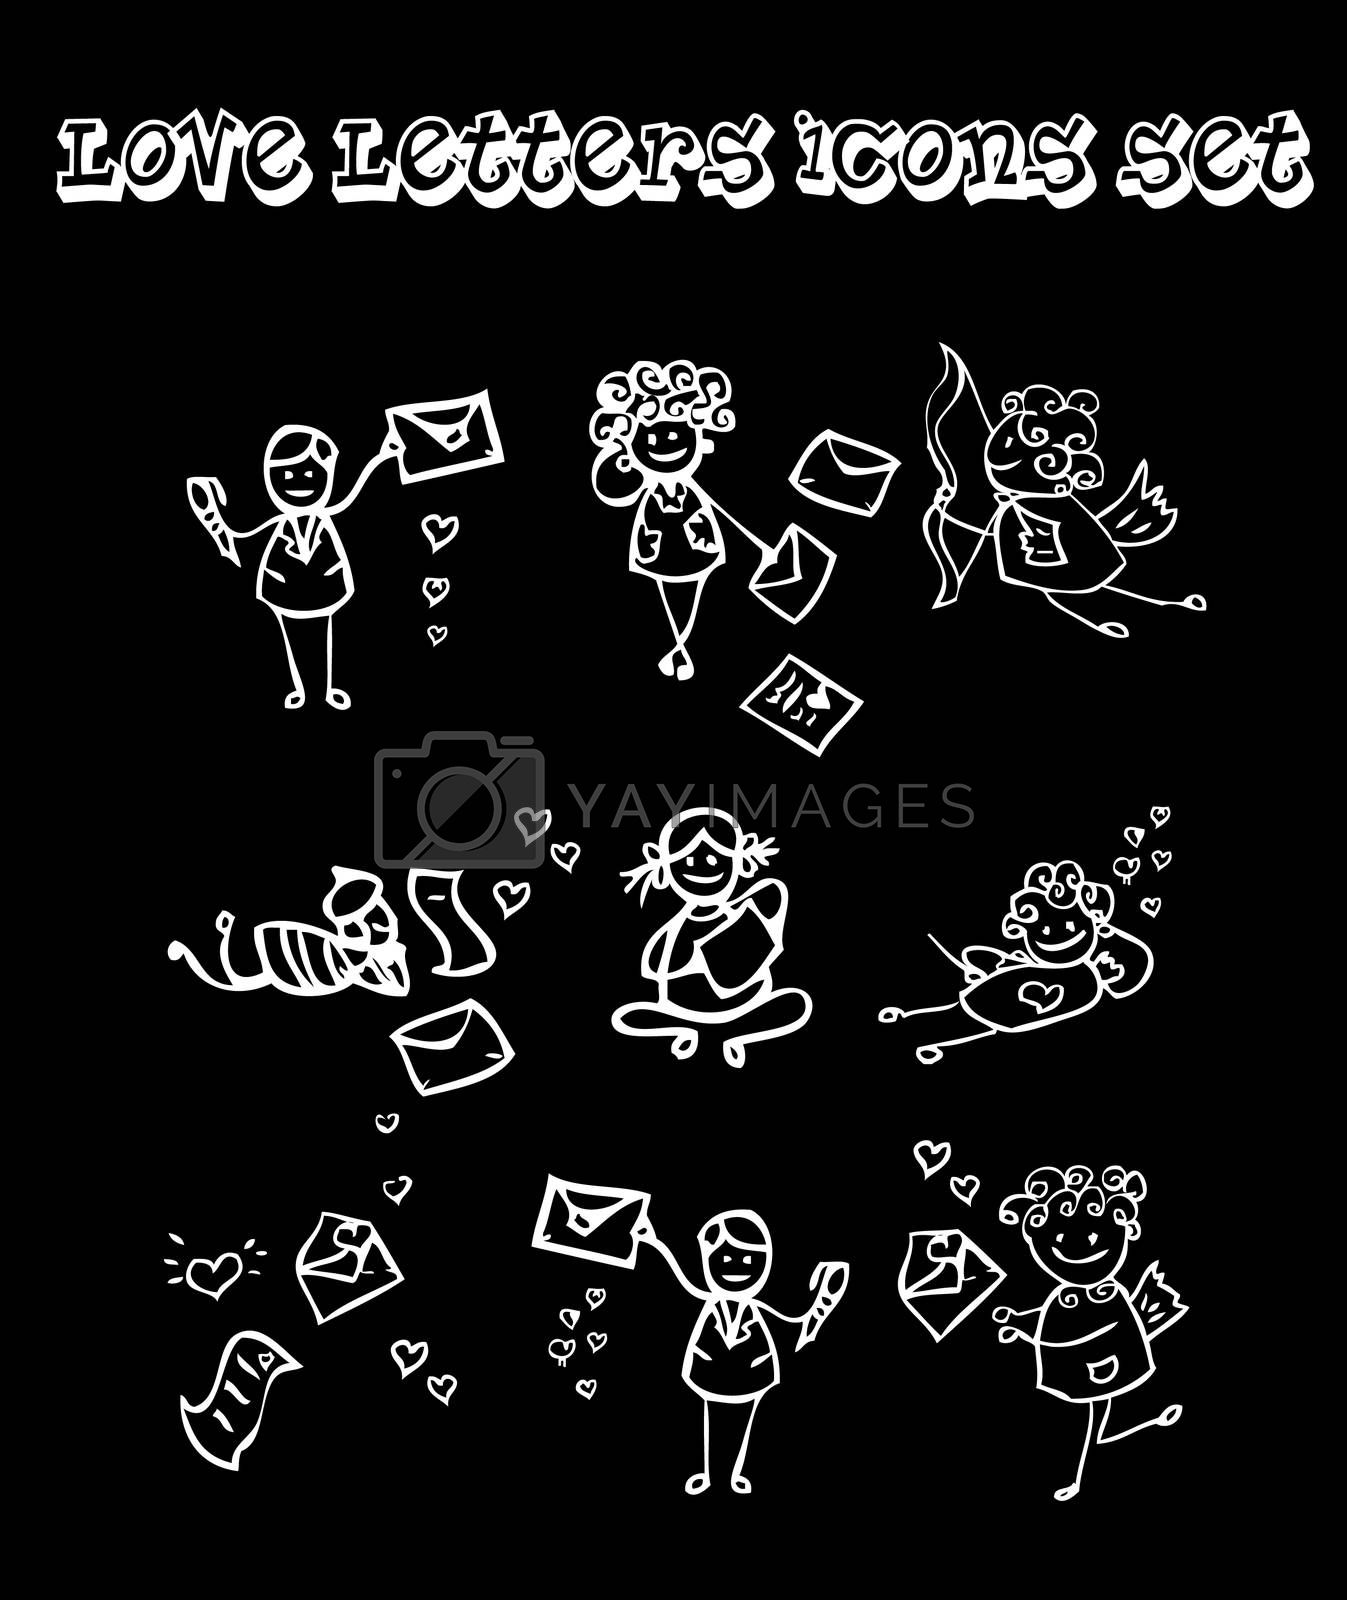 Black background love letters icons set, baby style, Chalk and coal